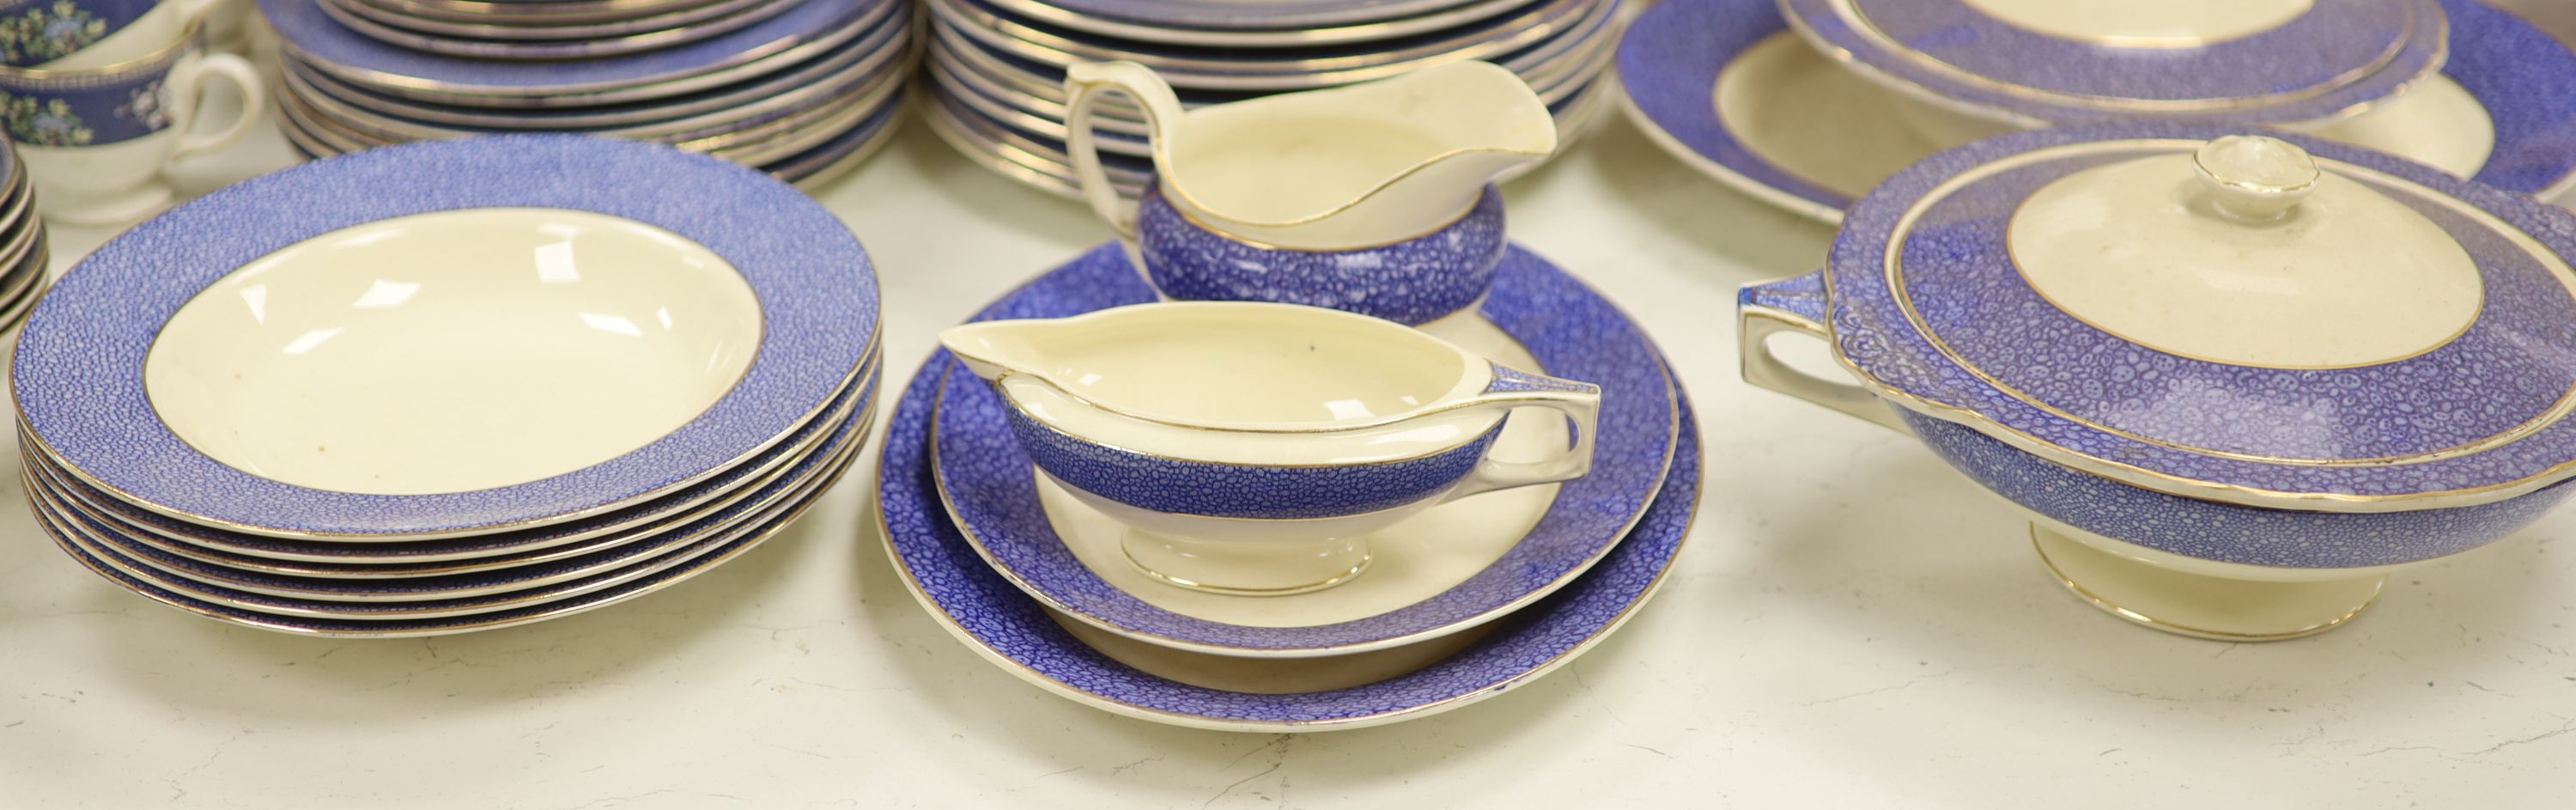 A Wedgwood 'Blue Siam' pattern part dinner service and other mixed ceramics - Image 7 of 8